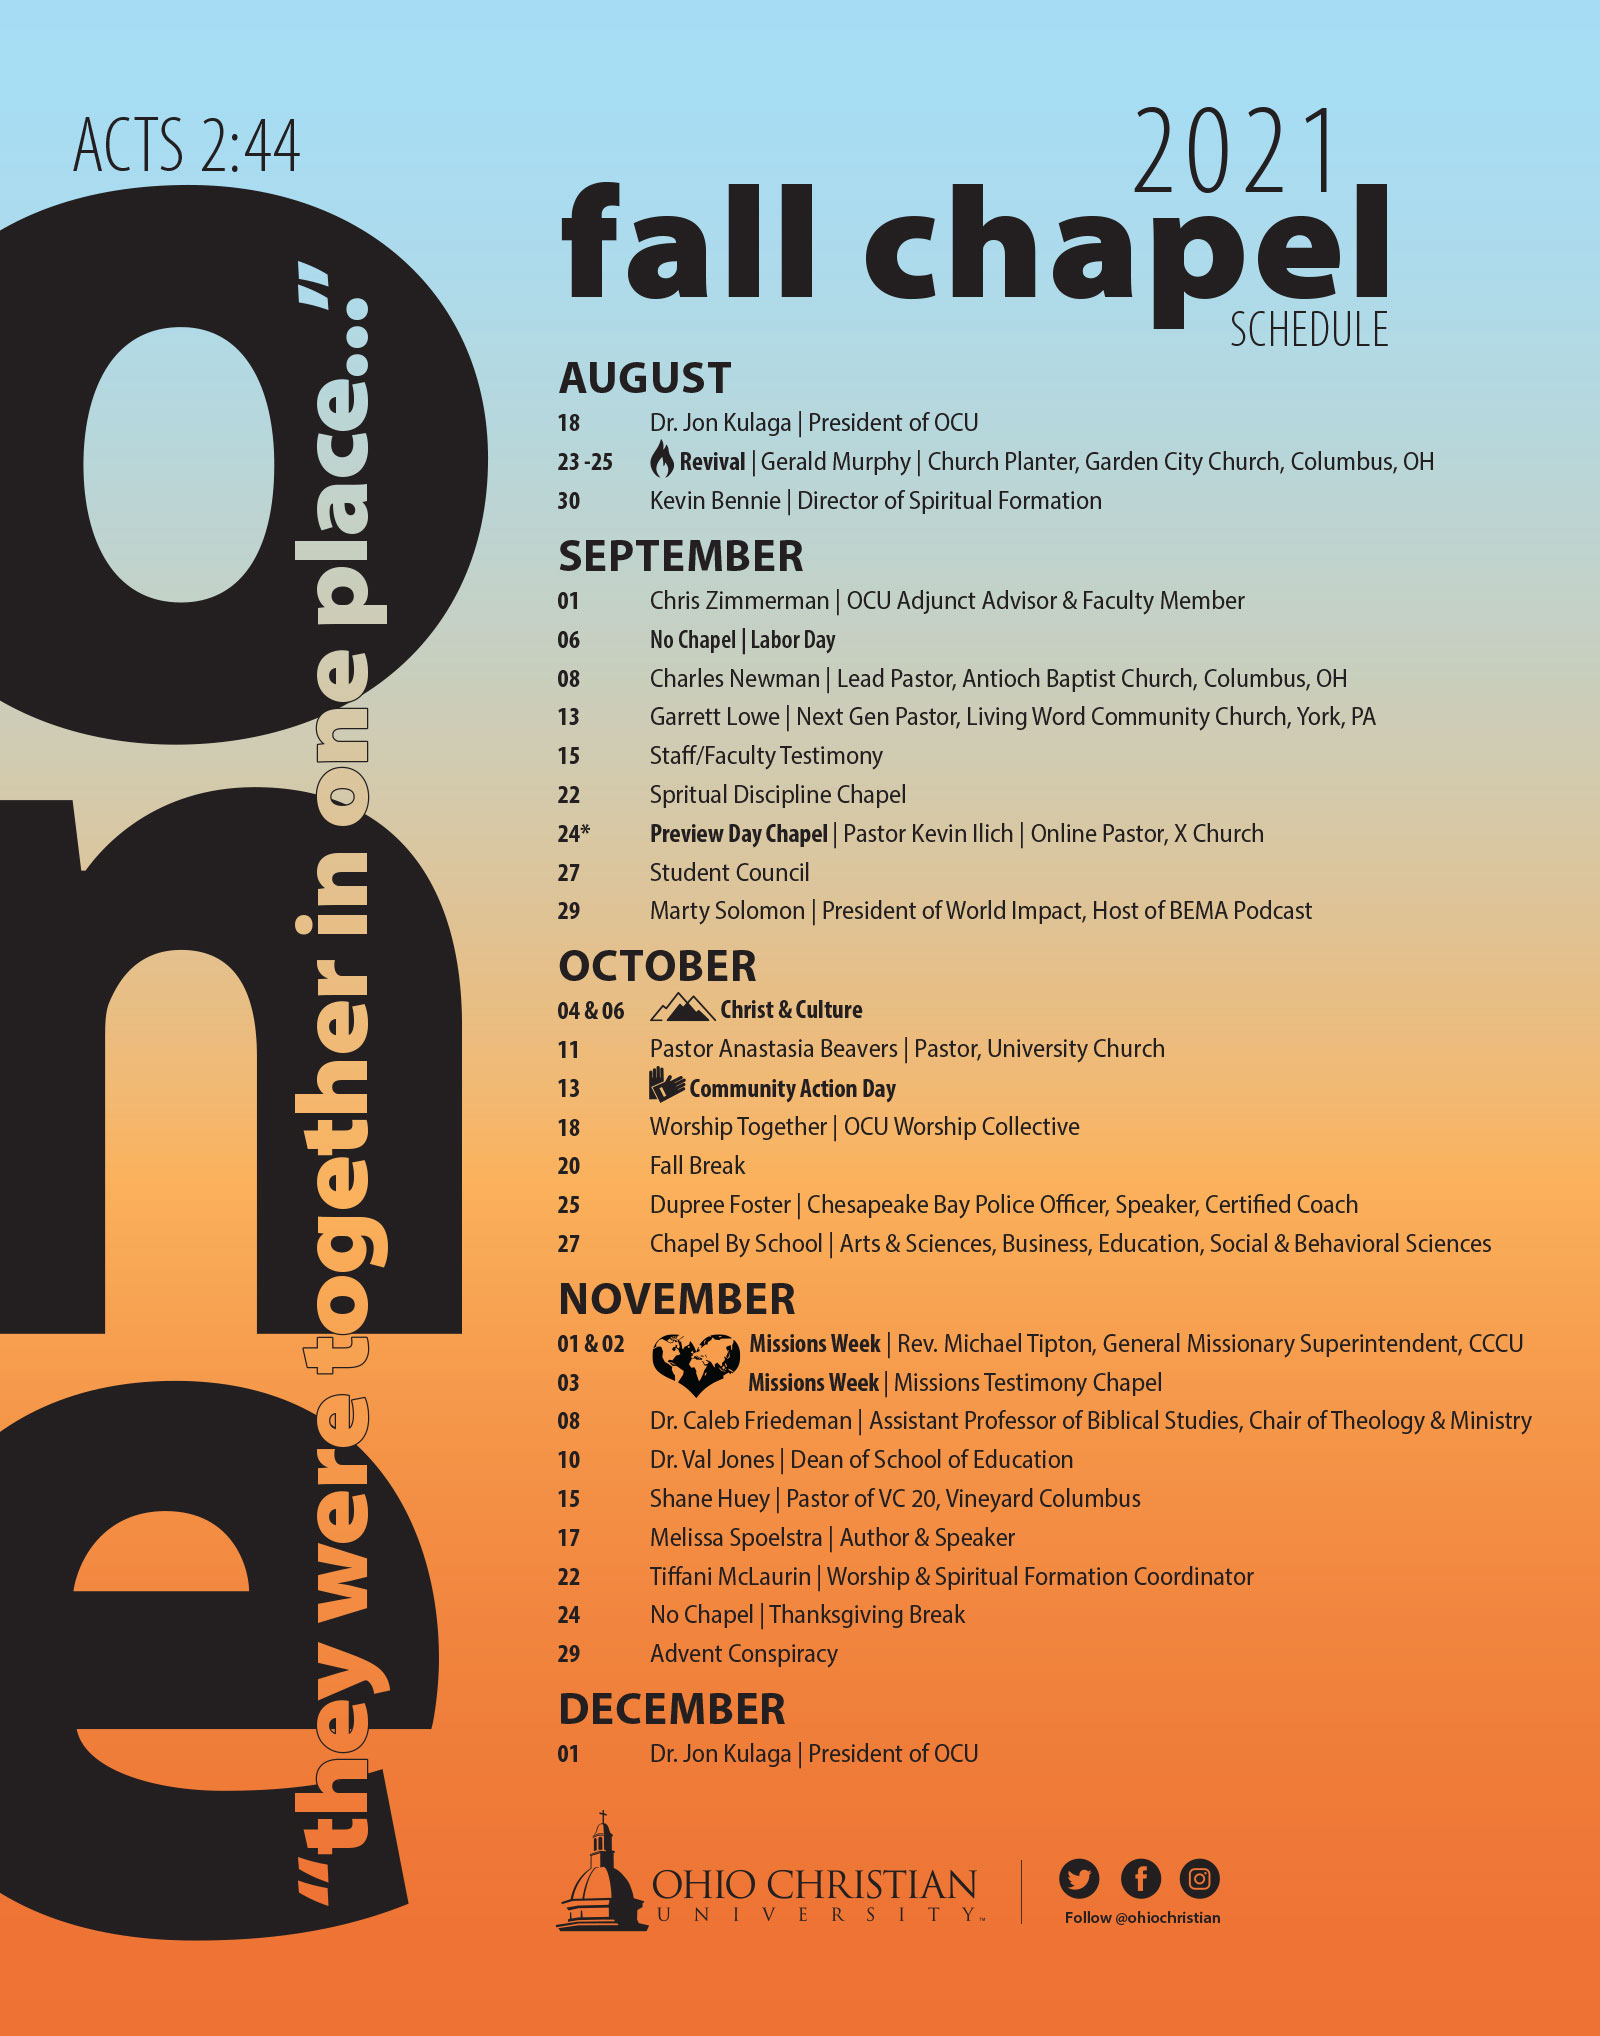 2021 Fall Chapel Schedule Image